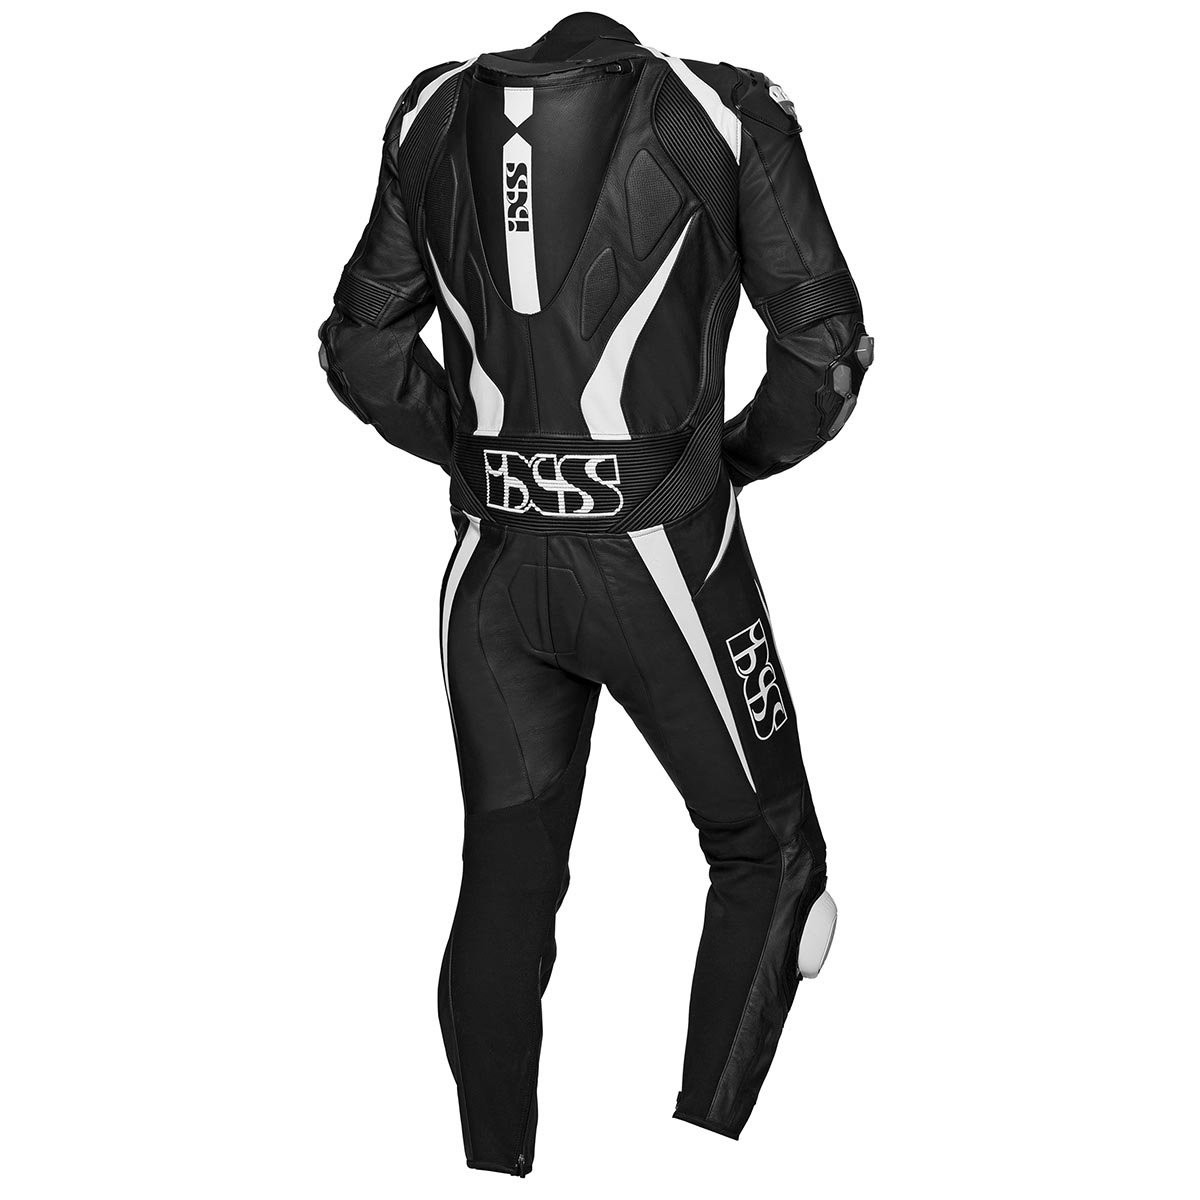 RS-1000 1.0 SUIT CANGAROO